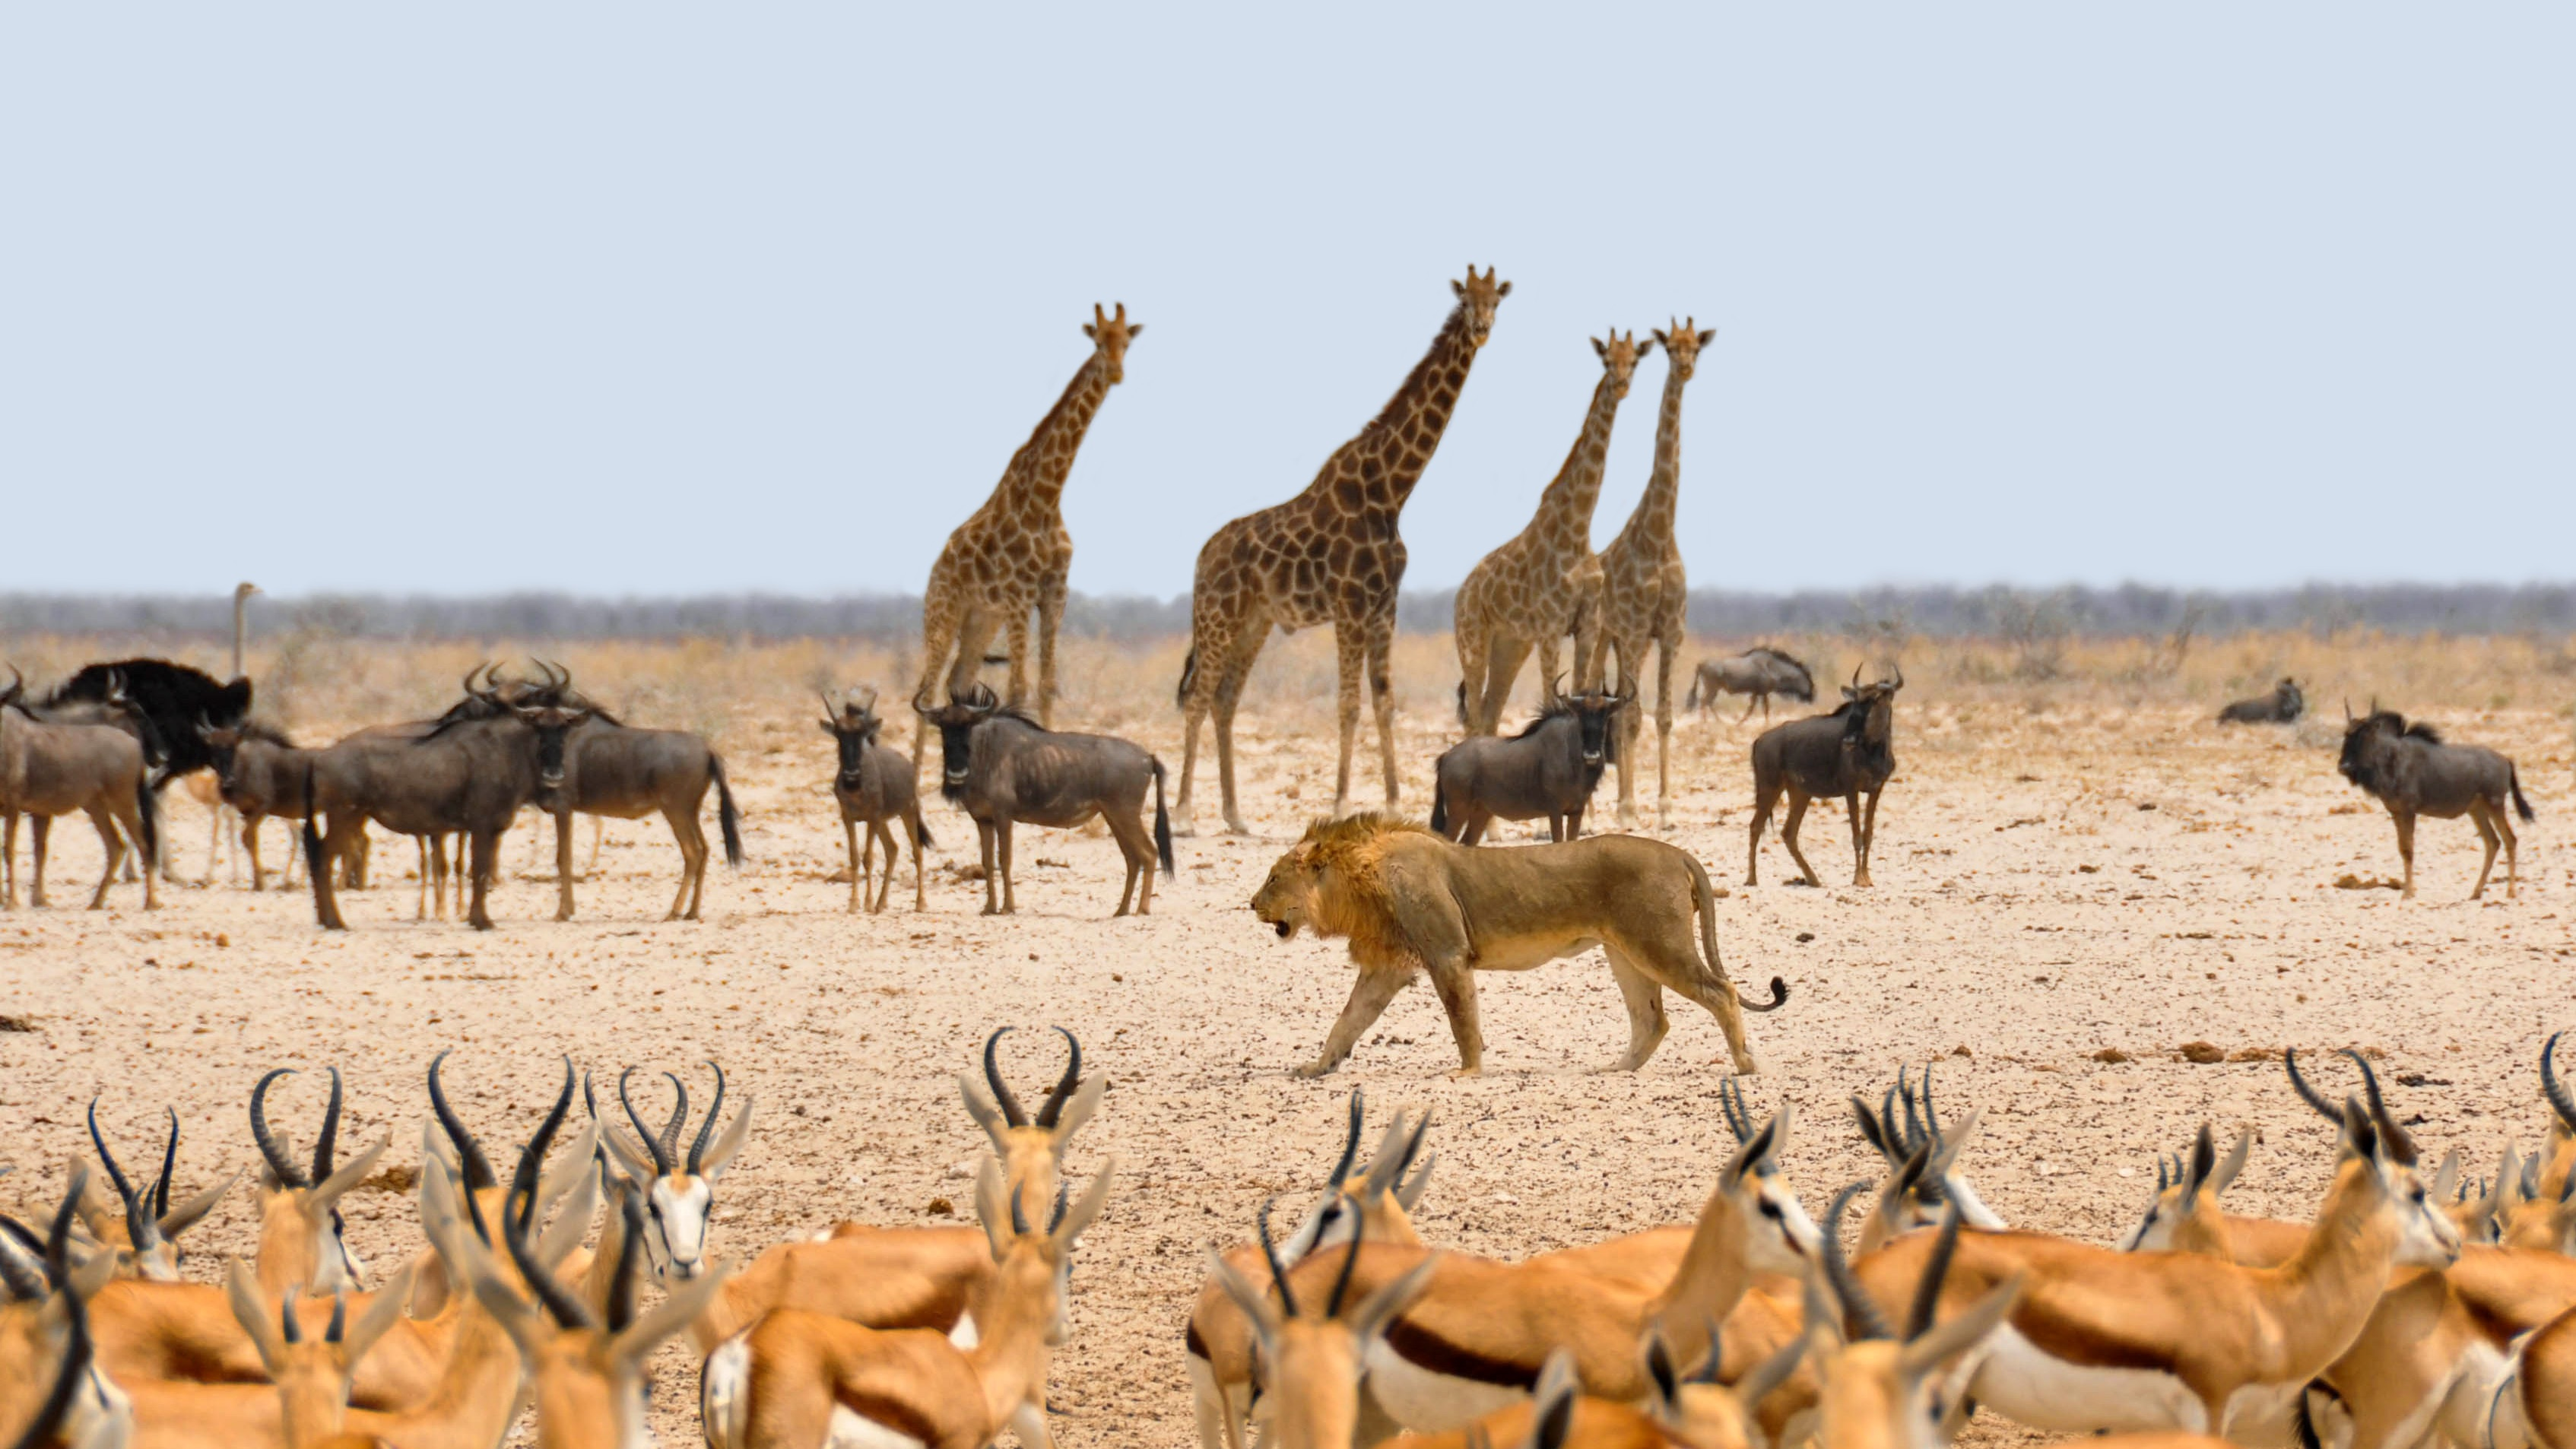 Wild animals in the national park in Namibia free image